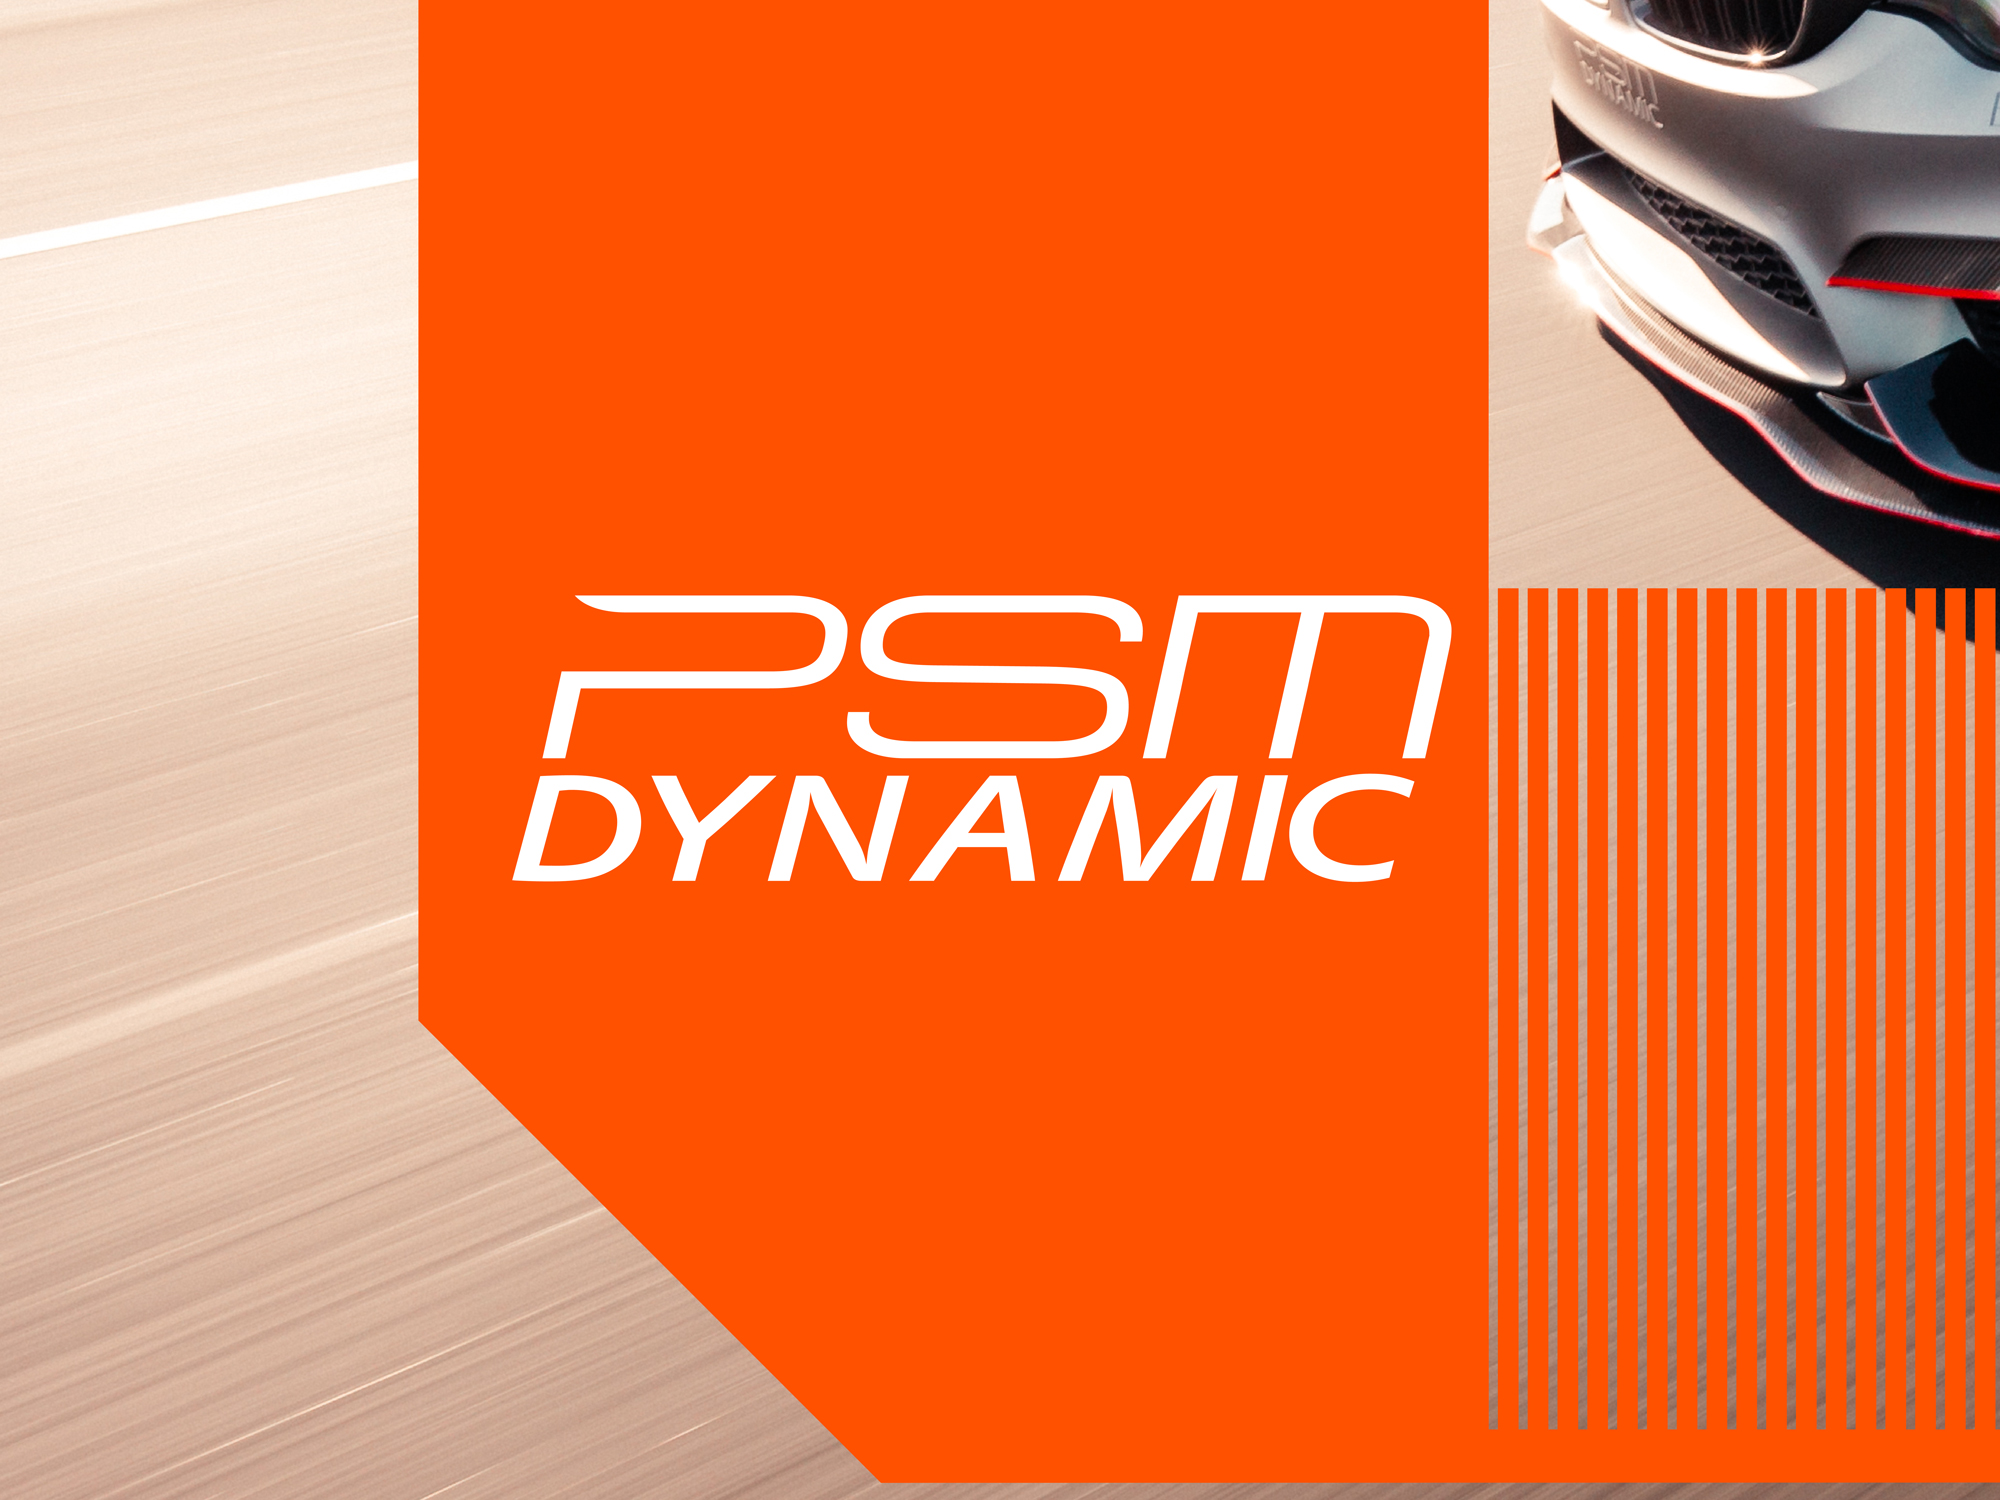 PSM Dynamic - Brand IDENTITY / creative direction / Product packaginG